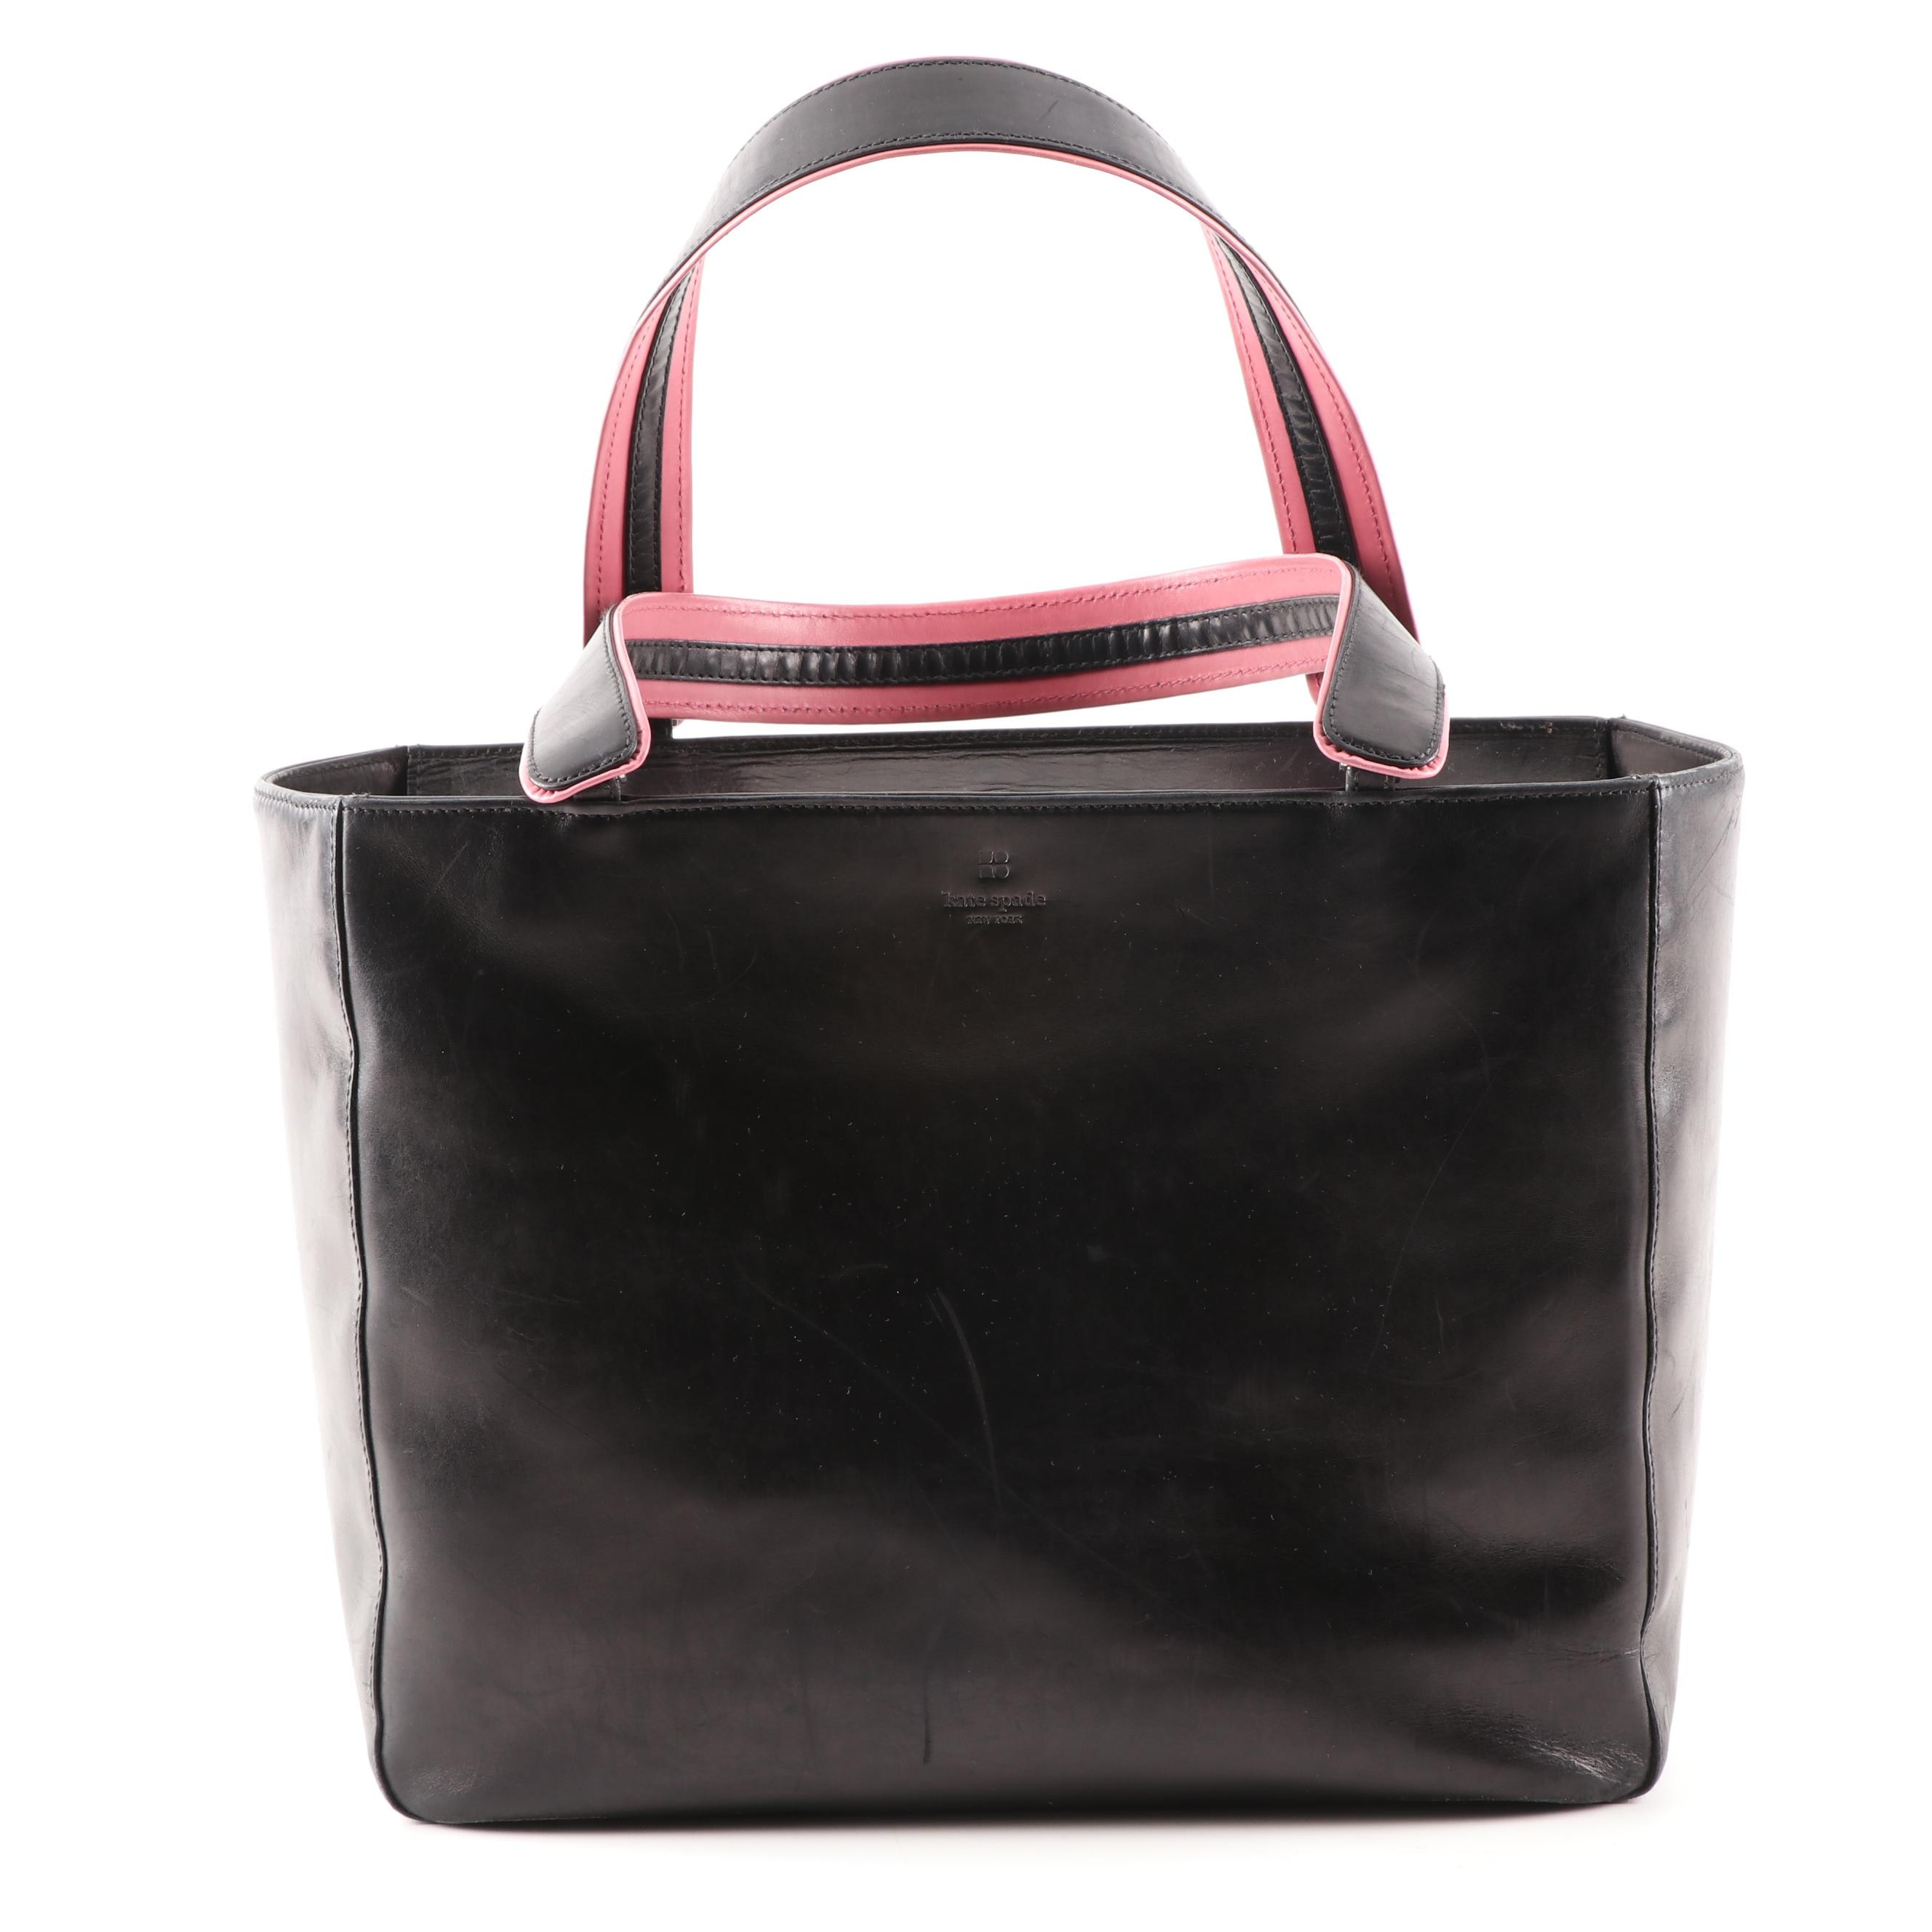 Kate Spade New York Black Leather Tote Bag Trimmed in Pink